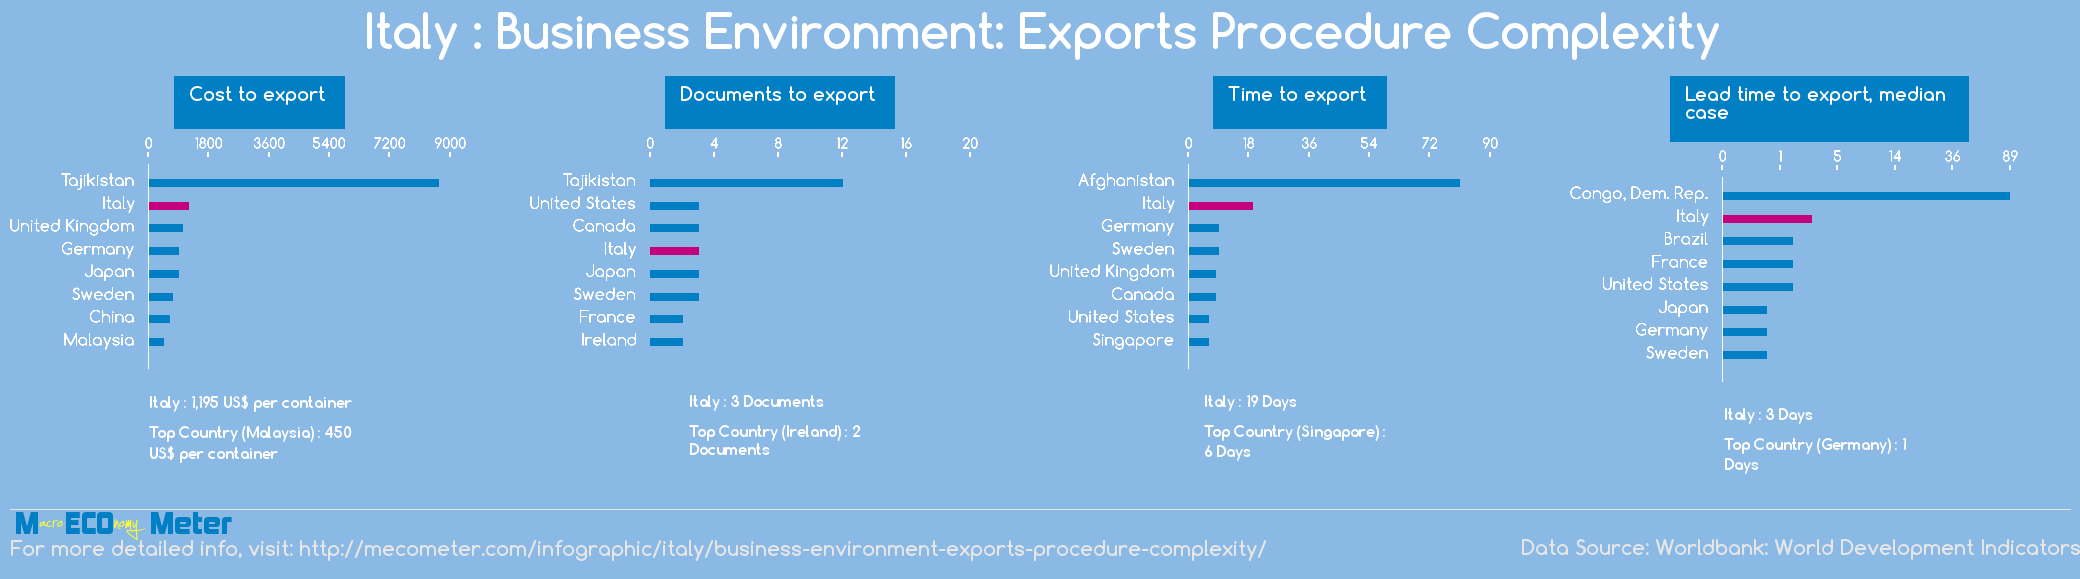 Italy : Business Environment: Exports Procedure Complexity